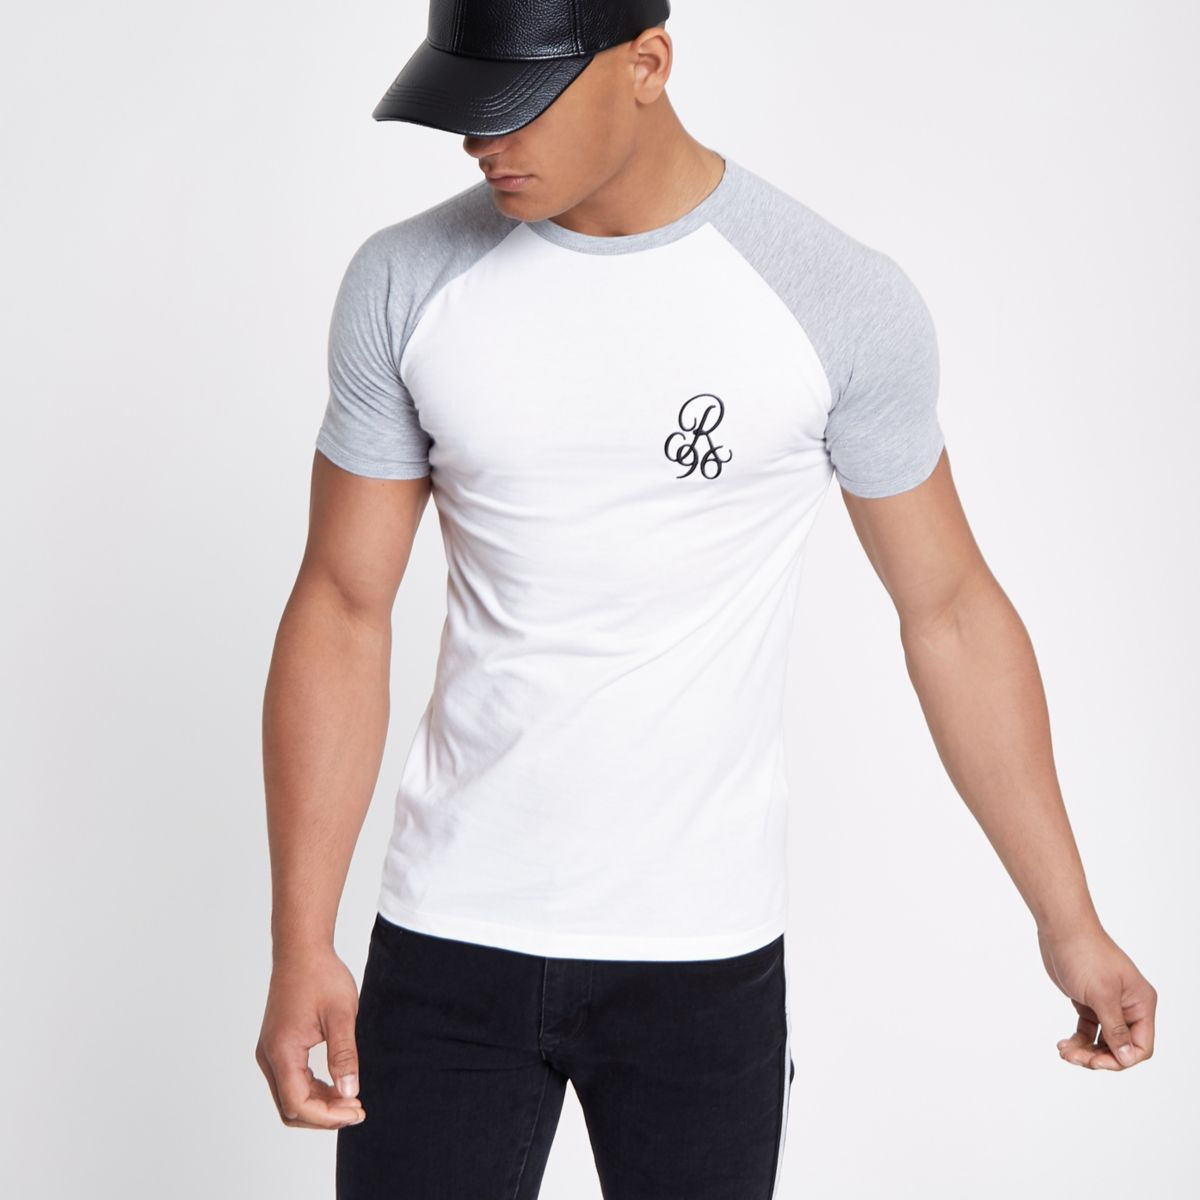 White muscle fit contrast T-shirt